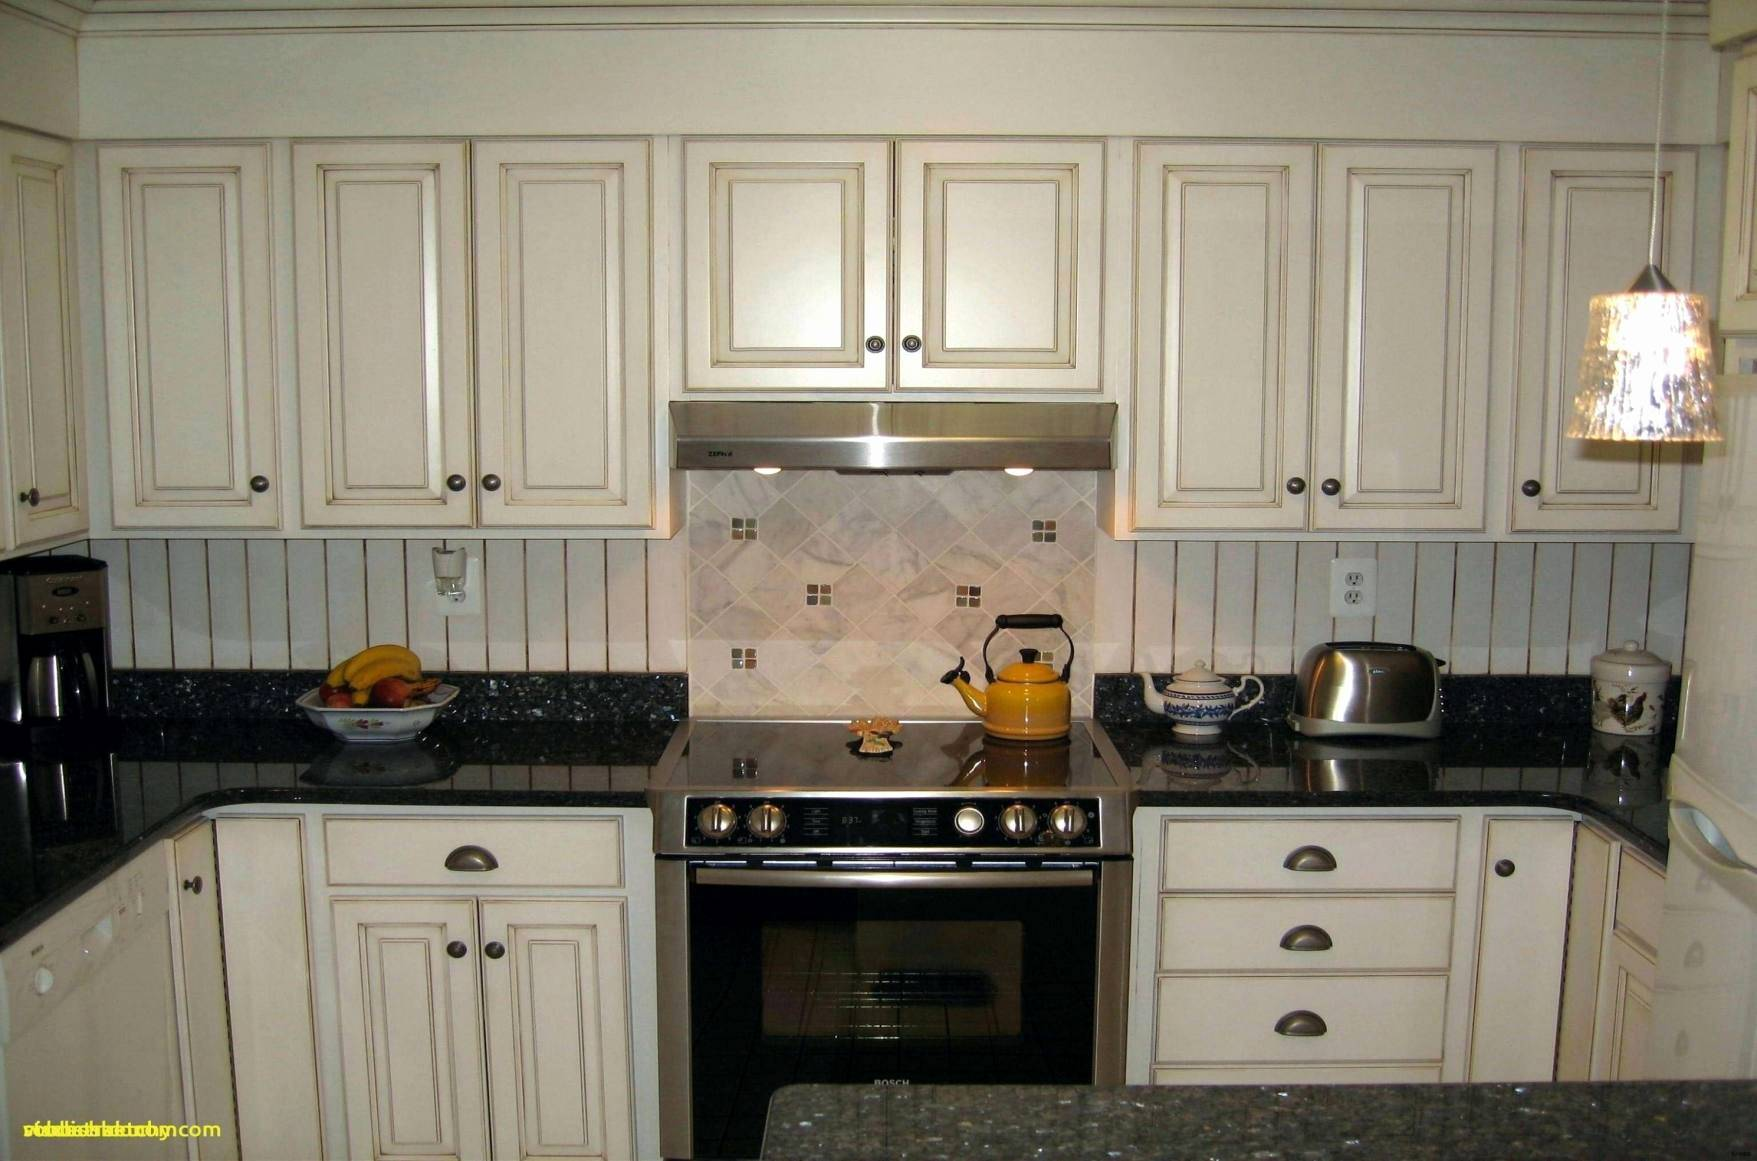 kitchen wallpaper backsplash ideas fresh italian tile backsplash awesome kitchen design 0d design kitchen of kitchen wallpaper backsplash ideas